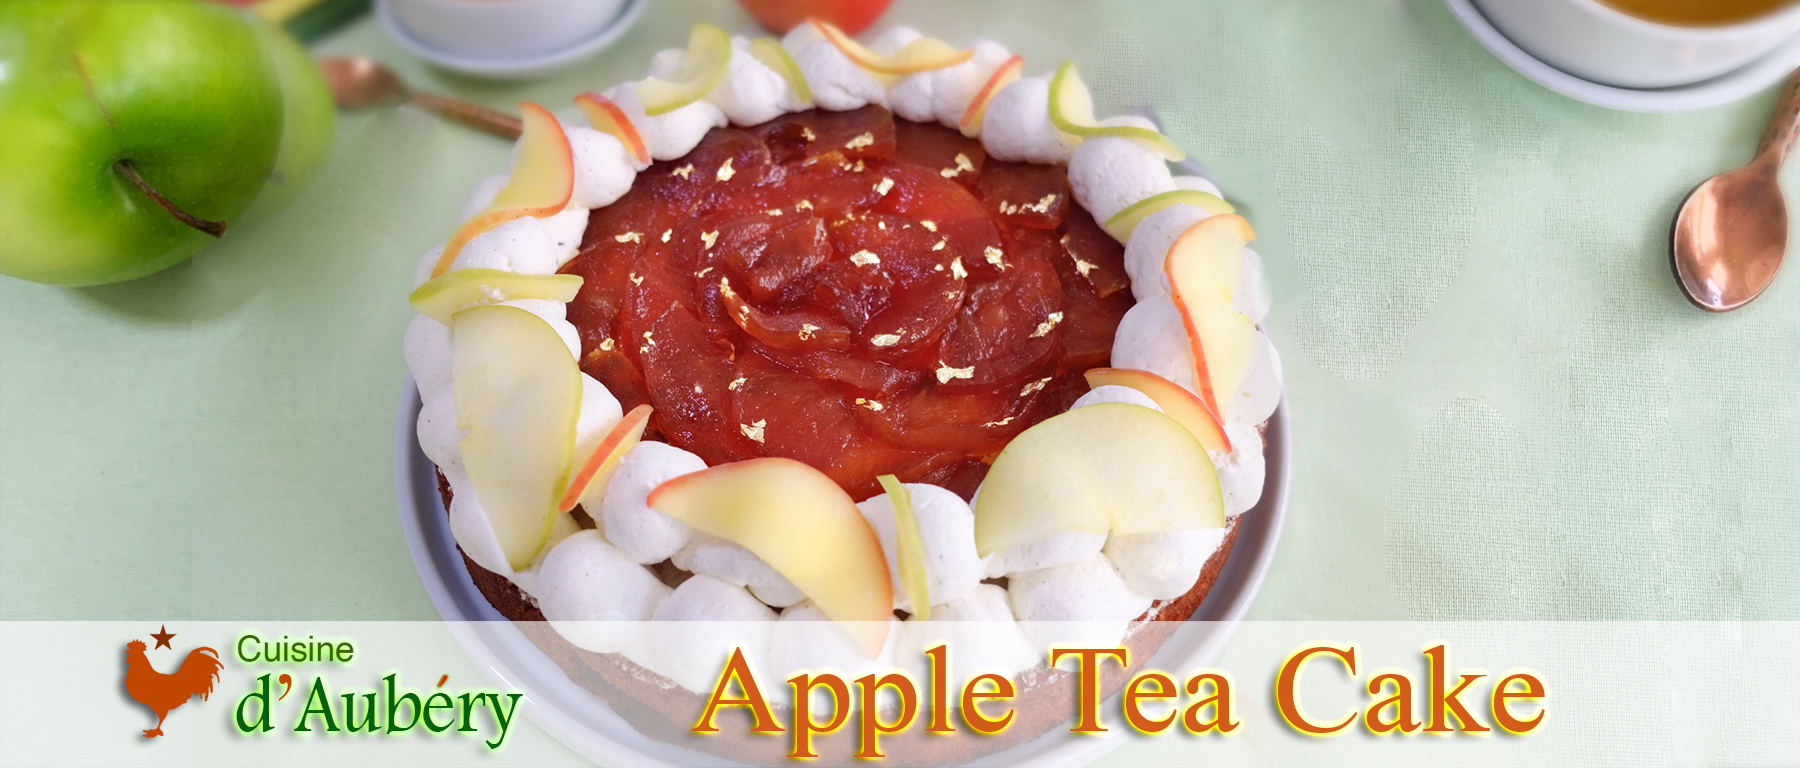 Vincent Boué's Apple Teacake